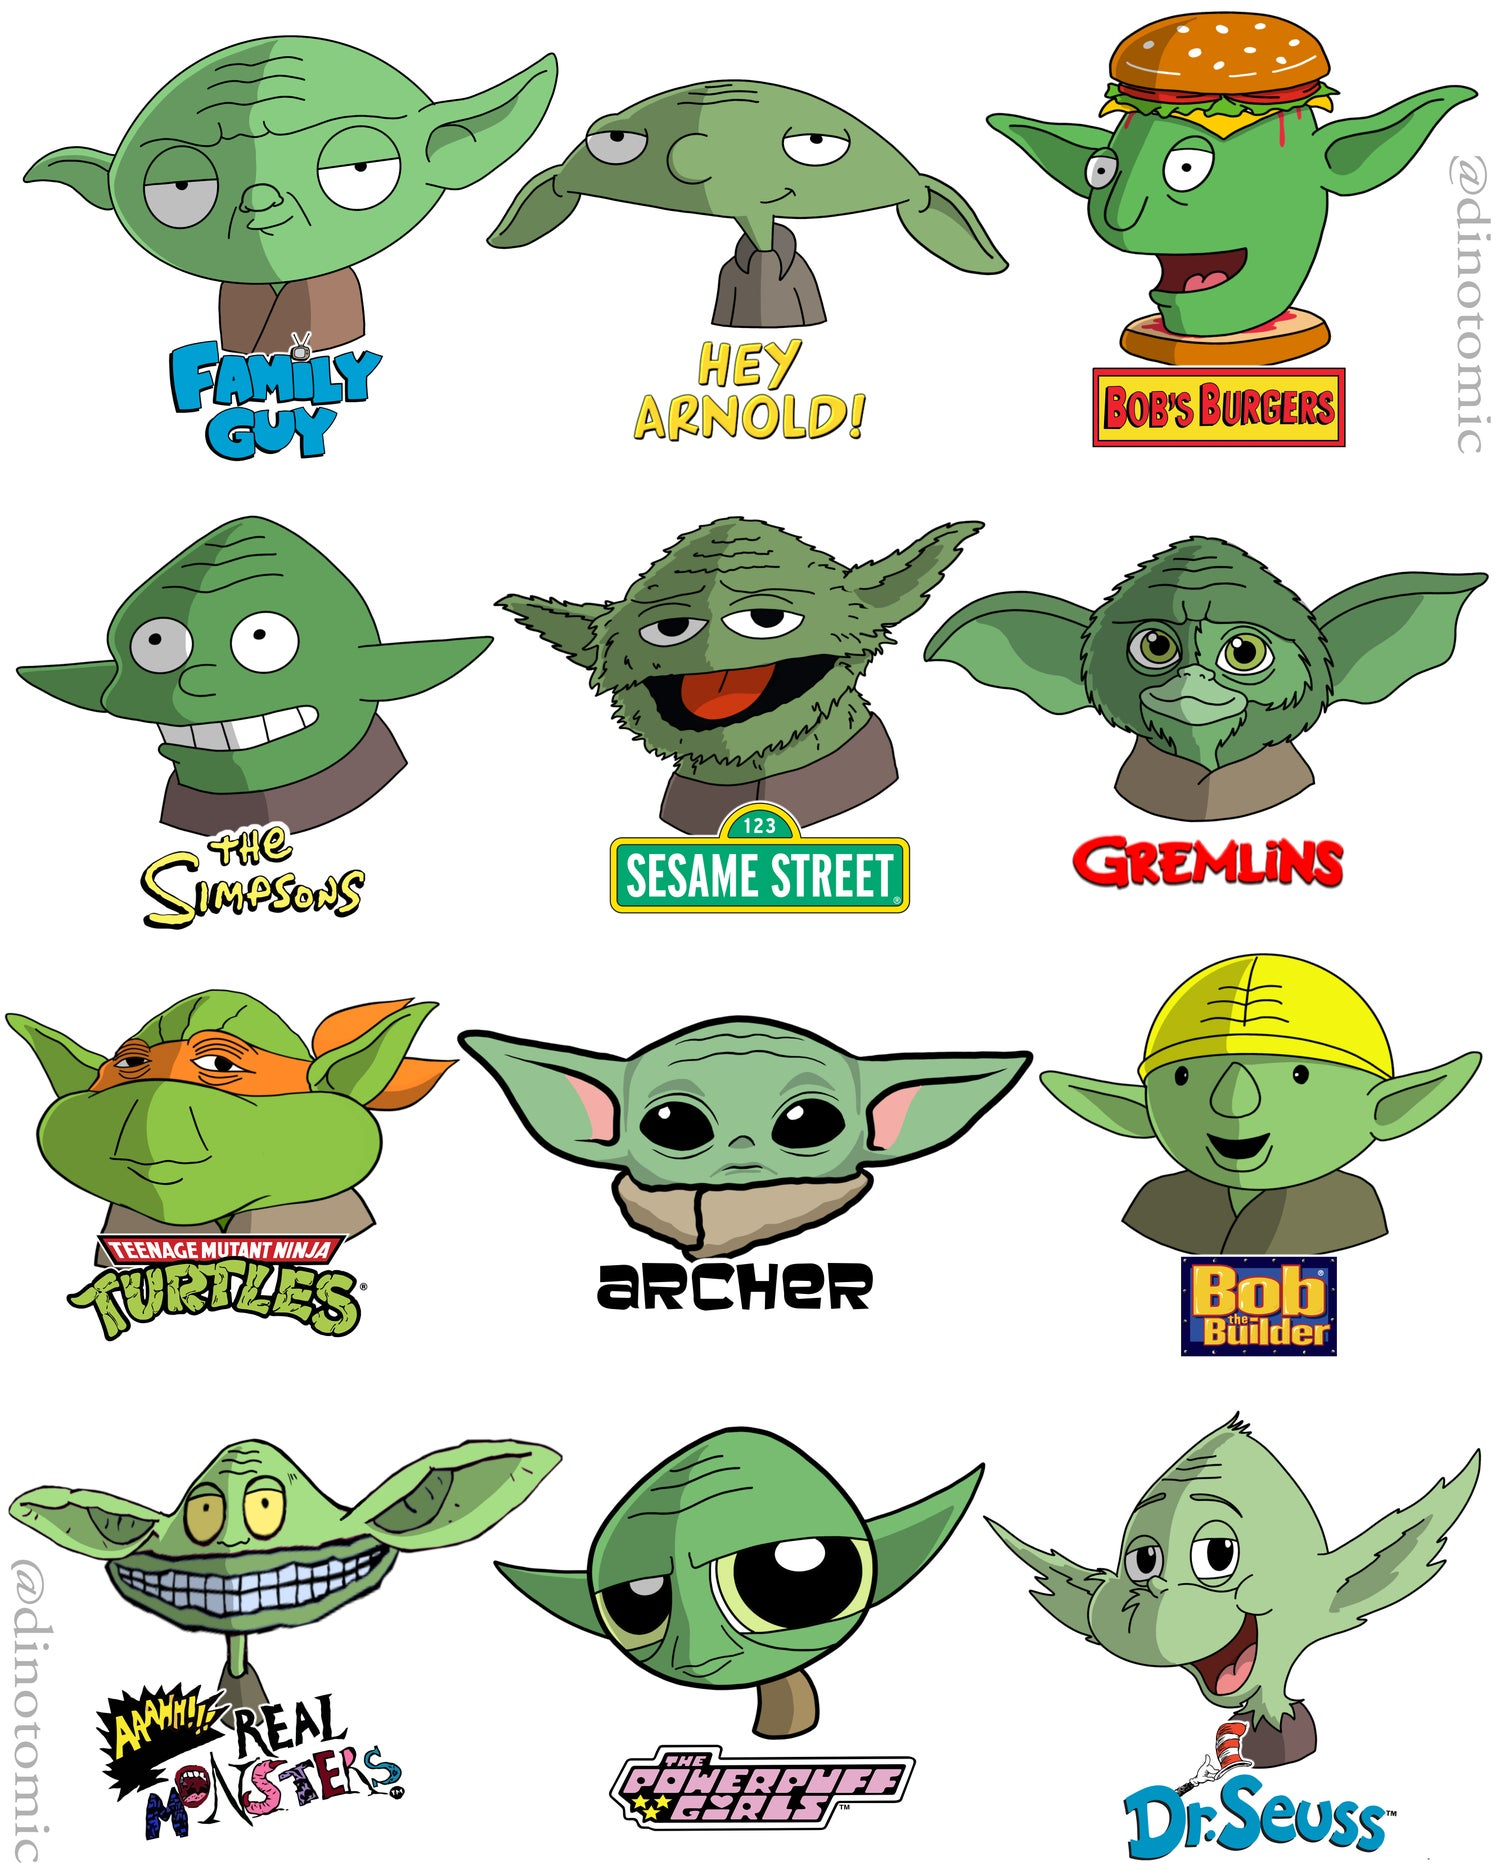 Image of #204 Yoda drawn in 12 styles